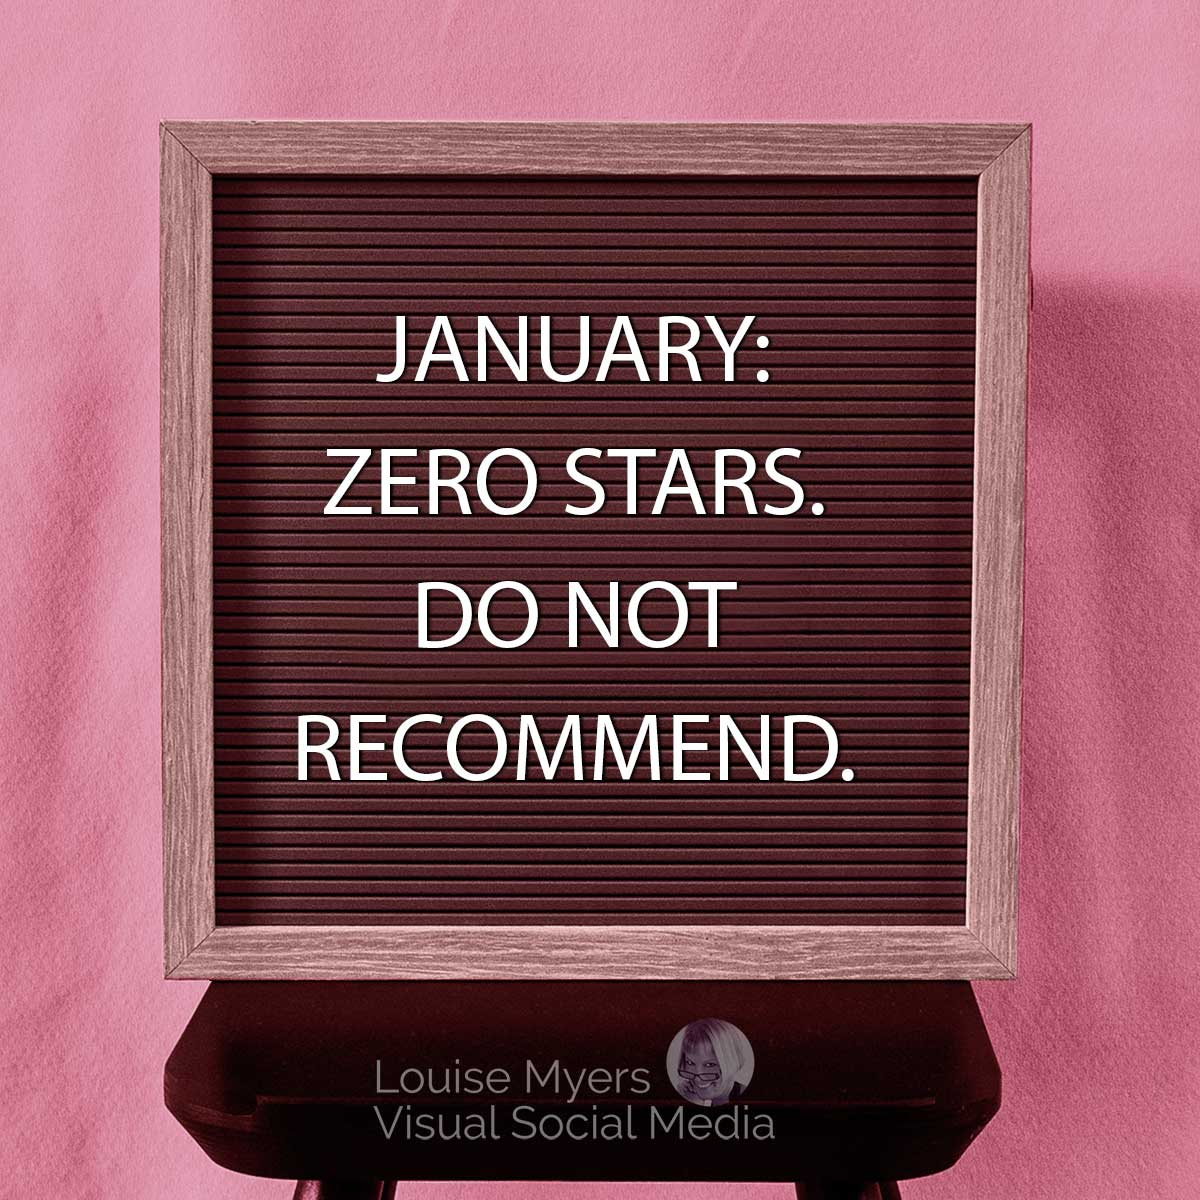 January Zero stars Do not recommend saying on letter board.